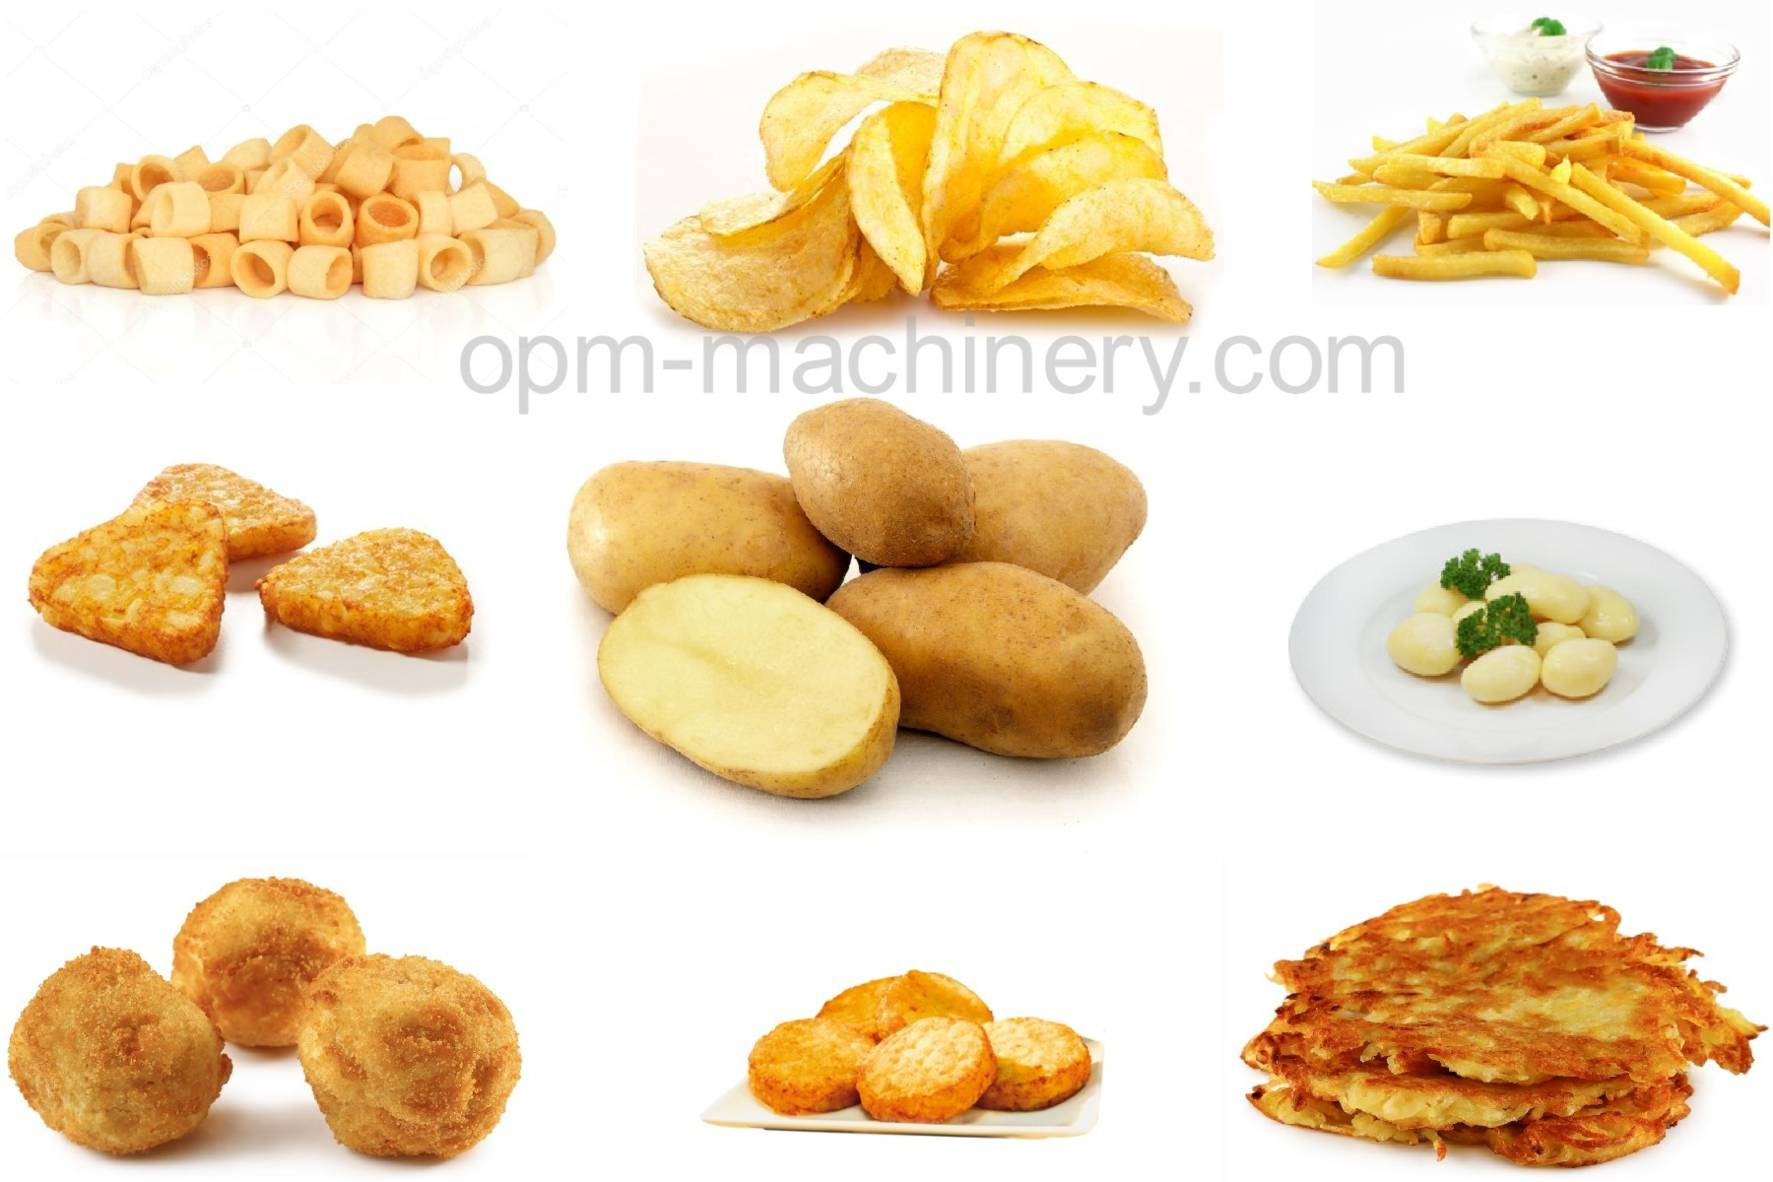 other potatoes products